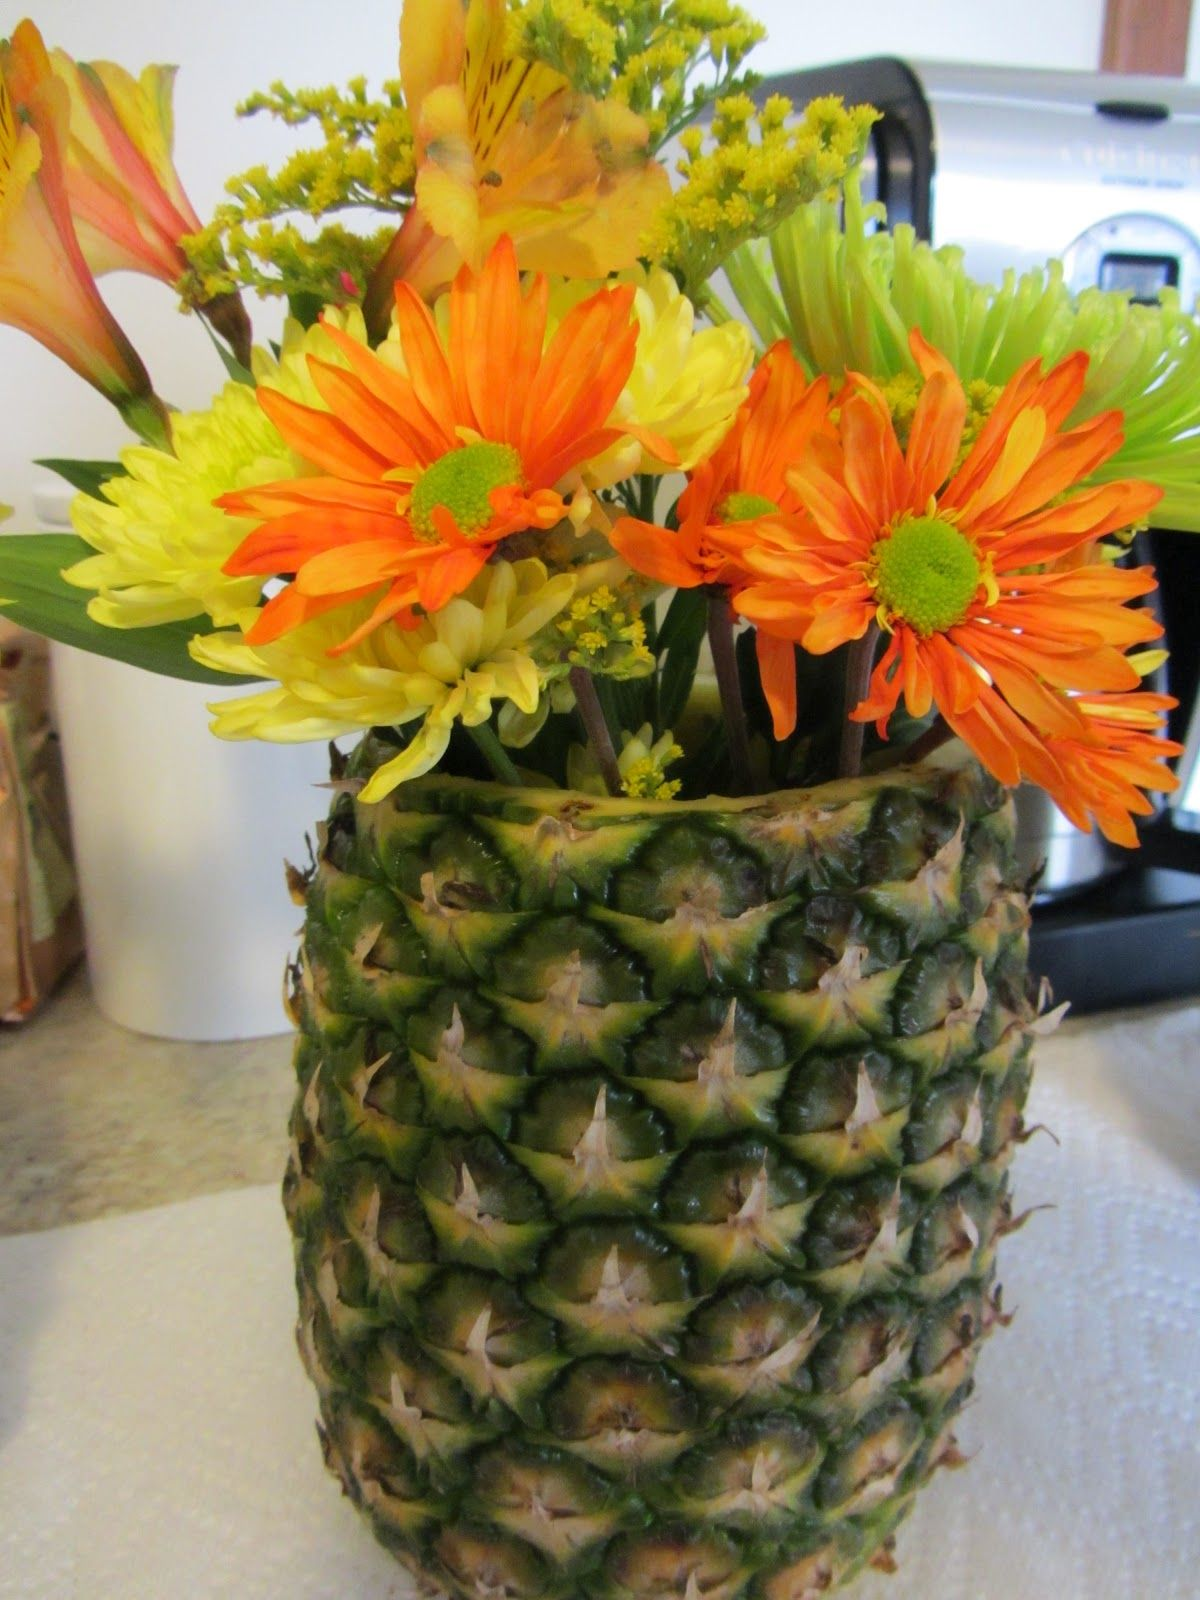 Tropical Themeuse Holowed Out Fresh Pineapple As A Vase For